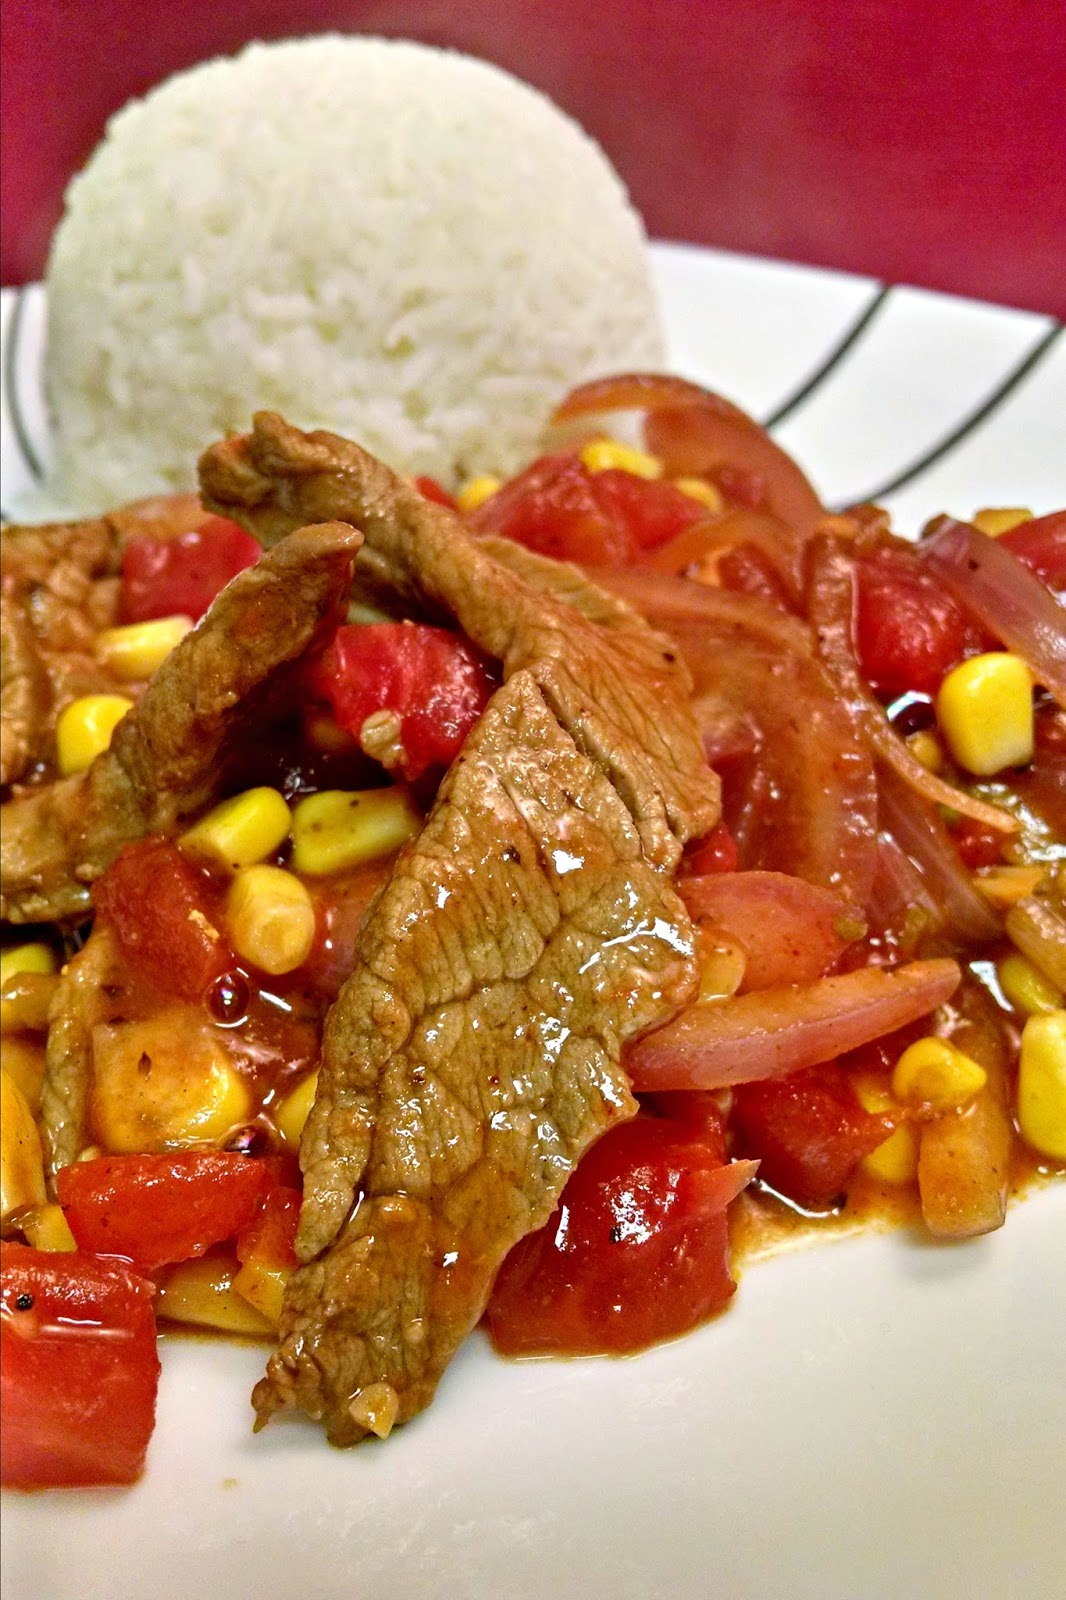 A mashup of Tex-Mex flavors combined with the quick and easy stir-fry style of Asian cuisine.  This Tex Mex Stir Fry #recipe is hubby approved and I'm sure it will be kid approved with your family, too!